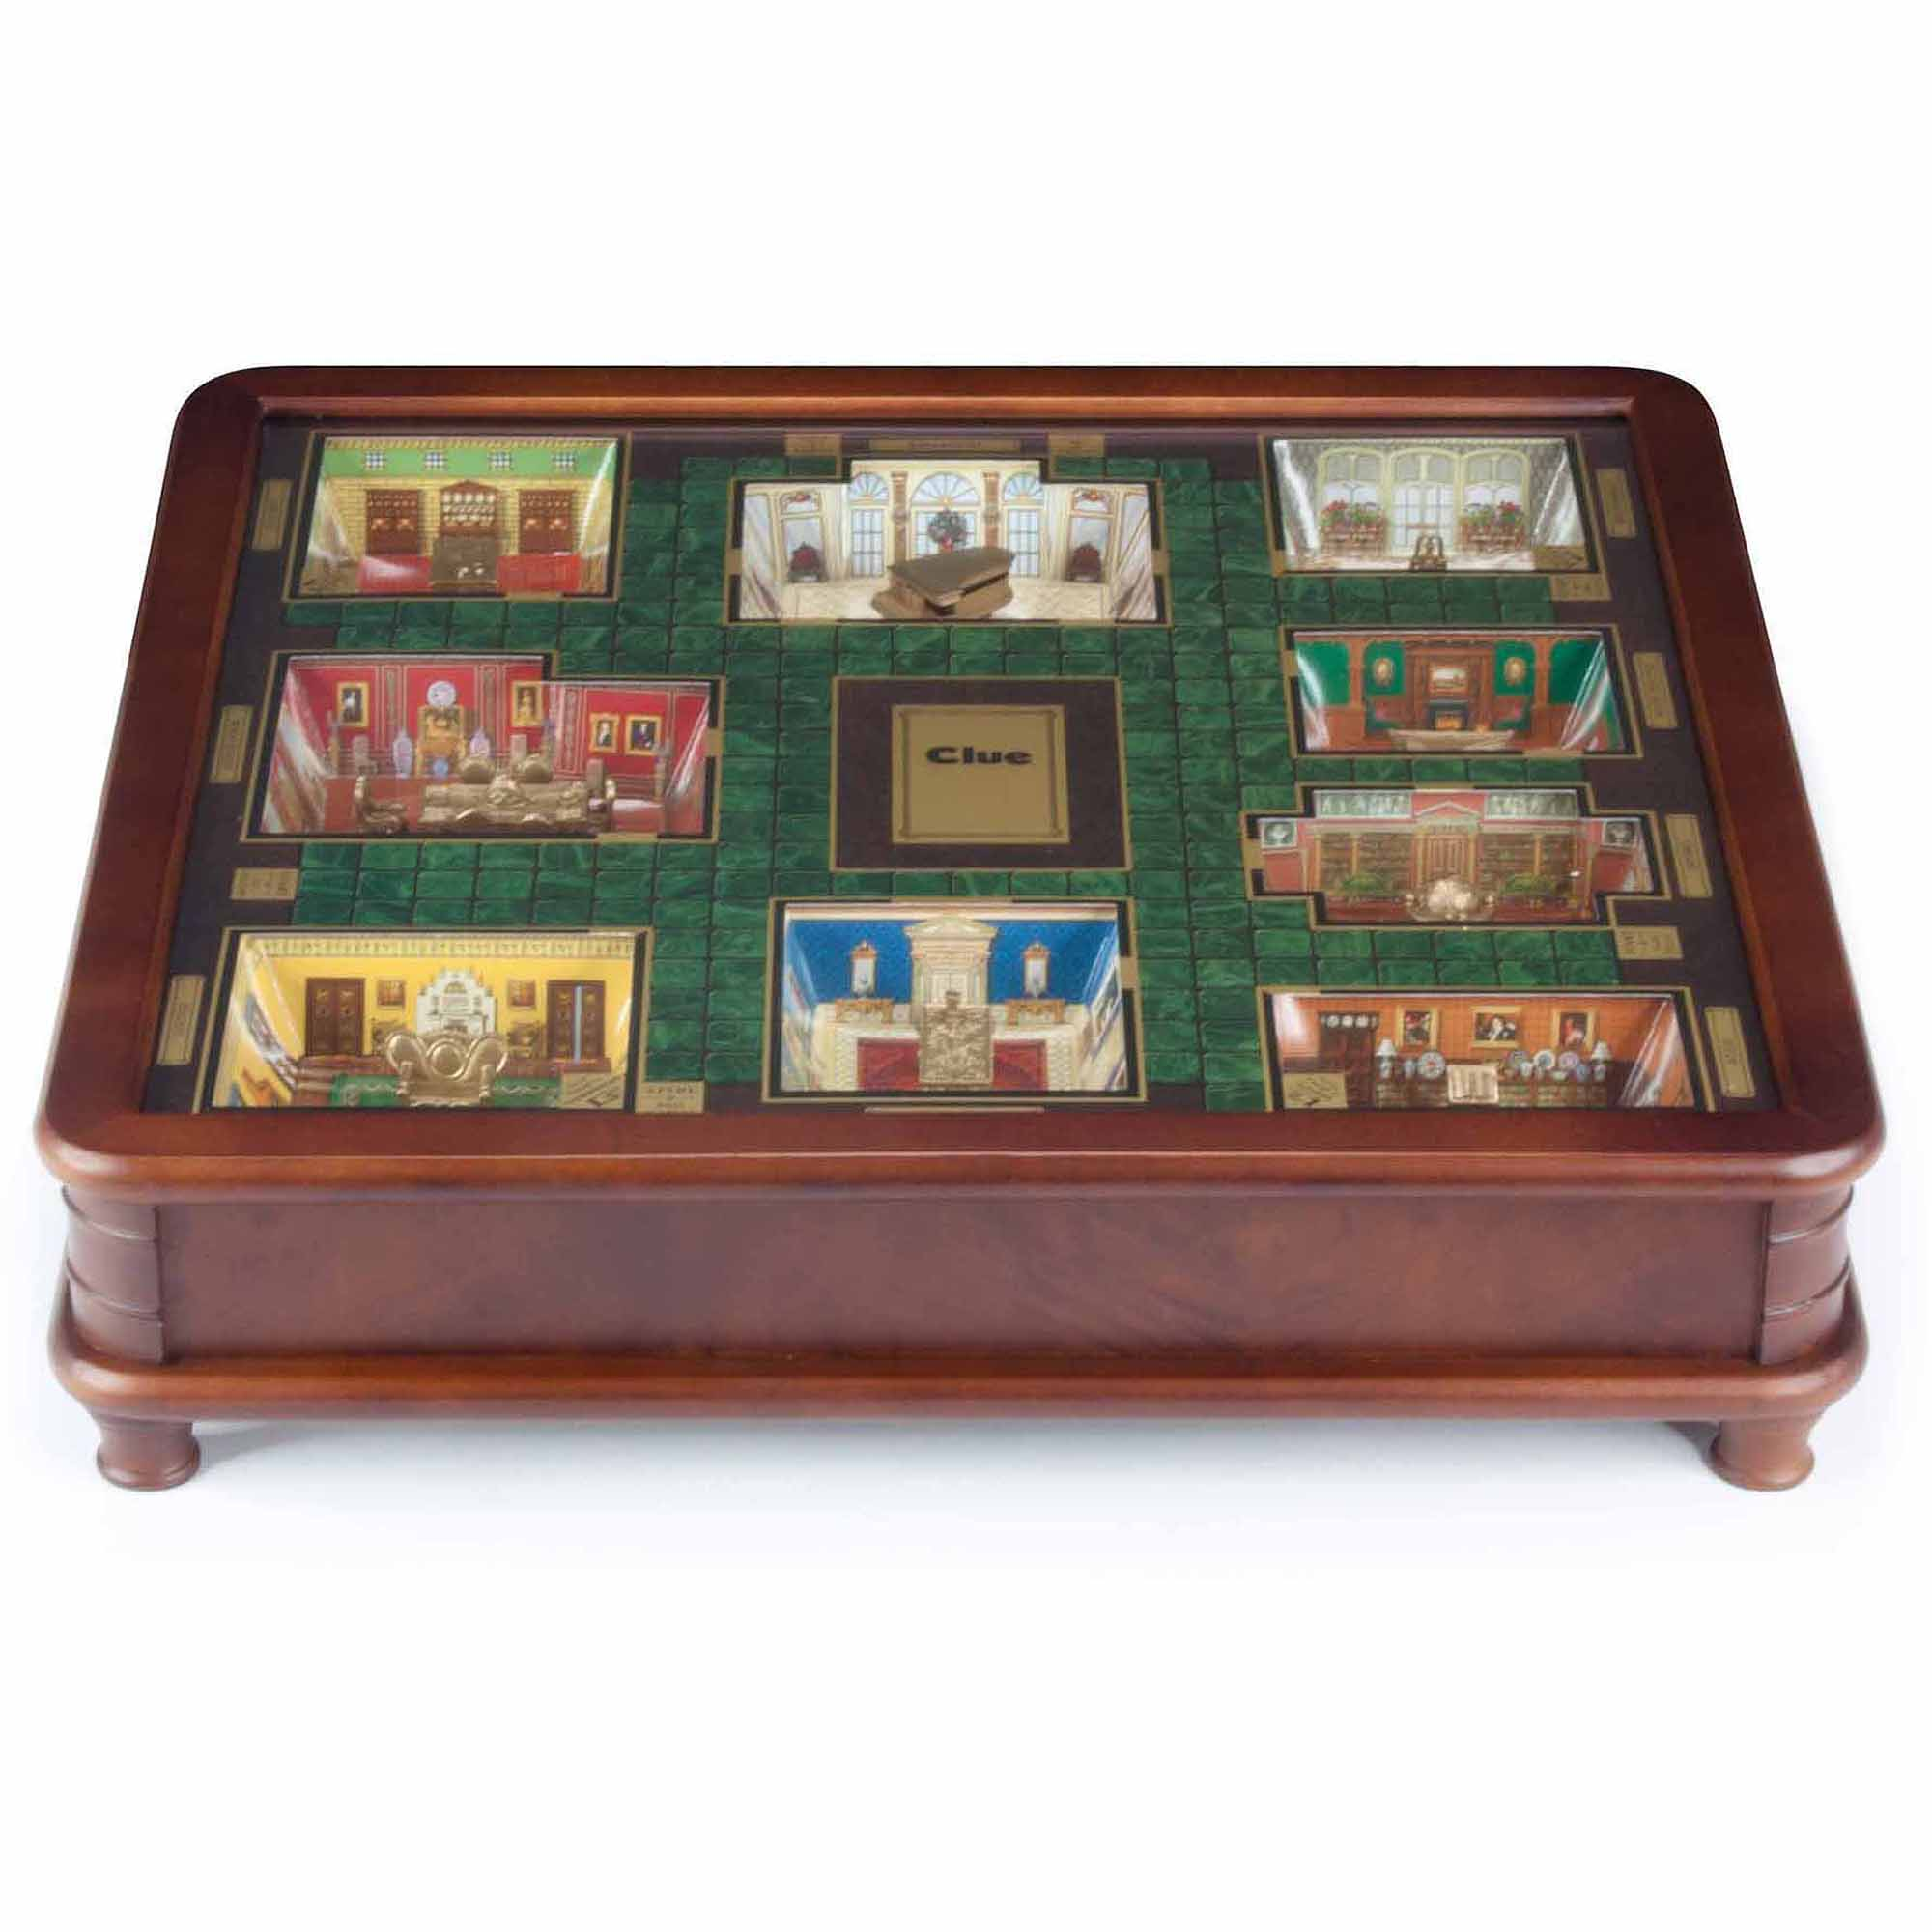 Clue Luxury Edition Board Game Walmart